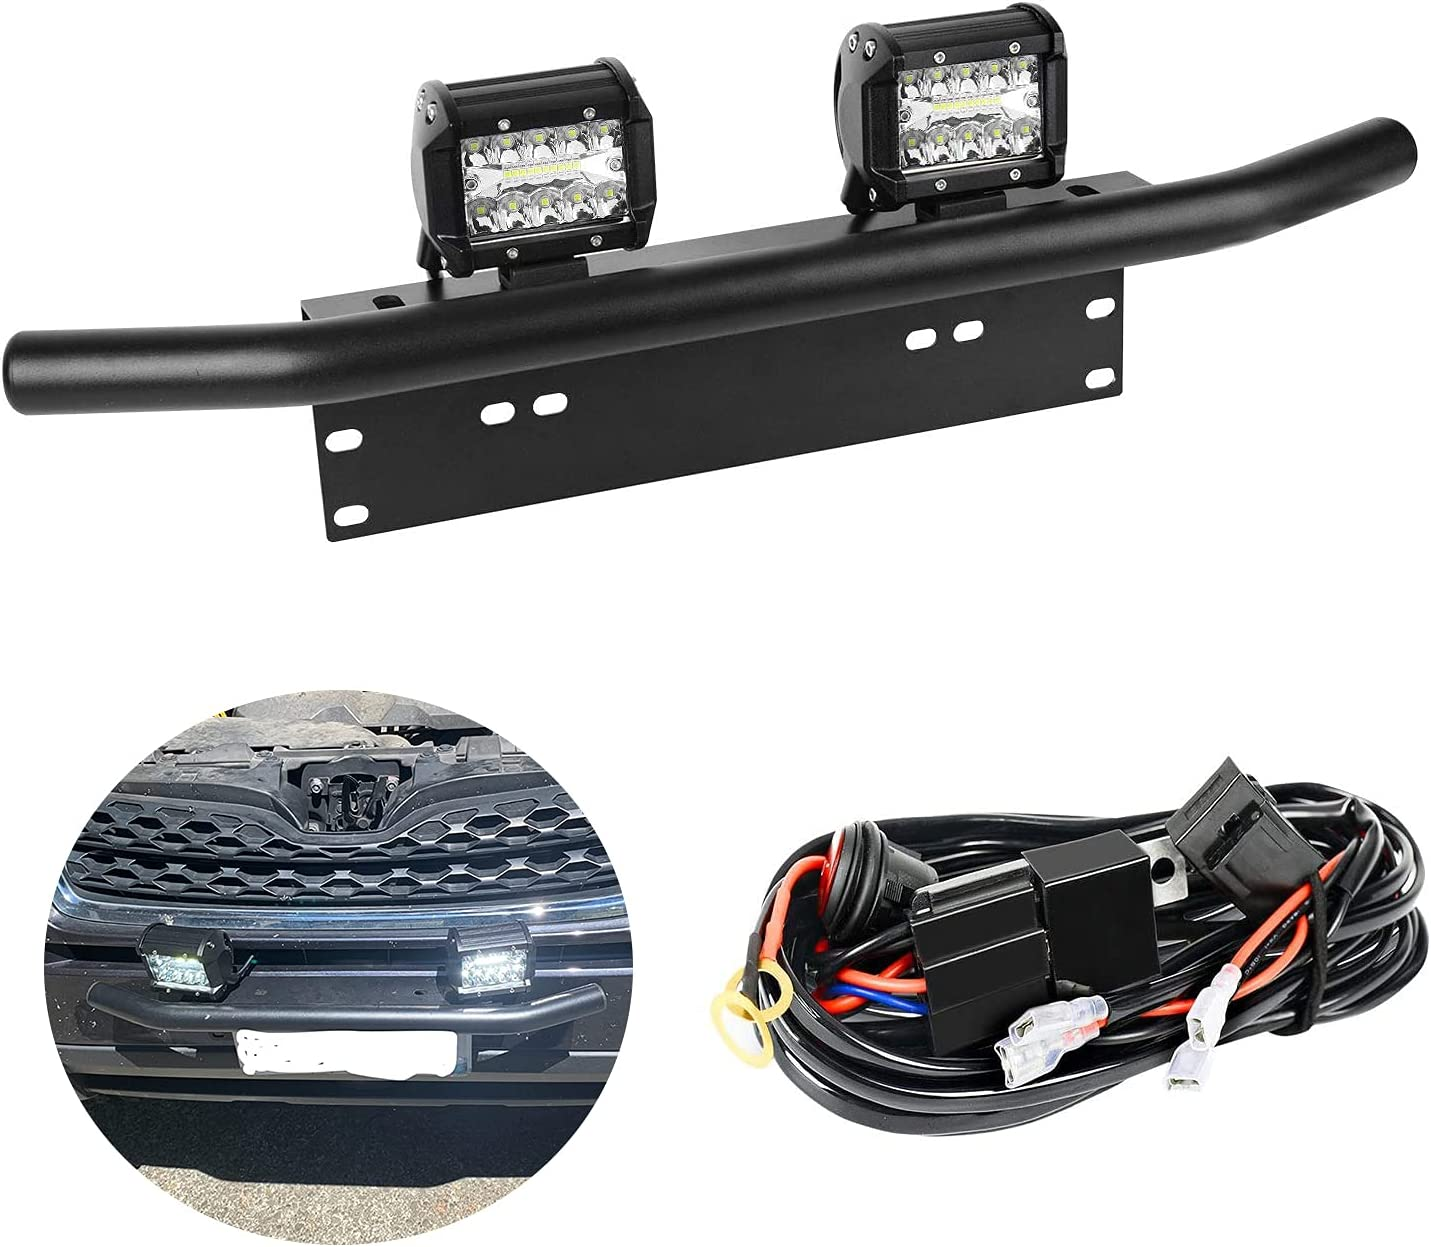 EBESTauto sale Compatible for Rapid rise 4 Inch LED Plat with Pods License Light